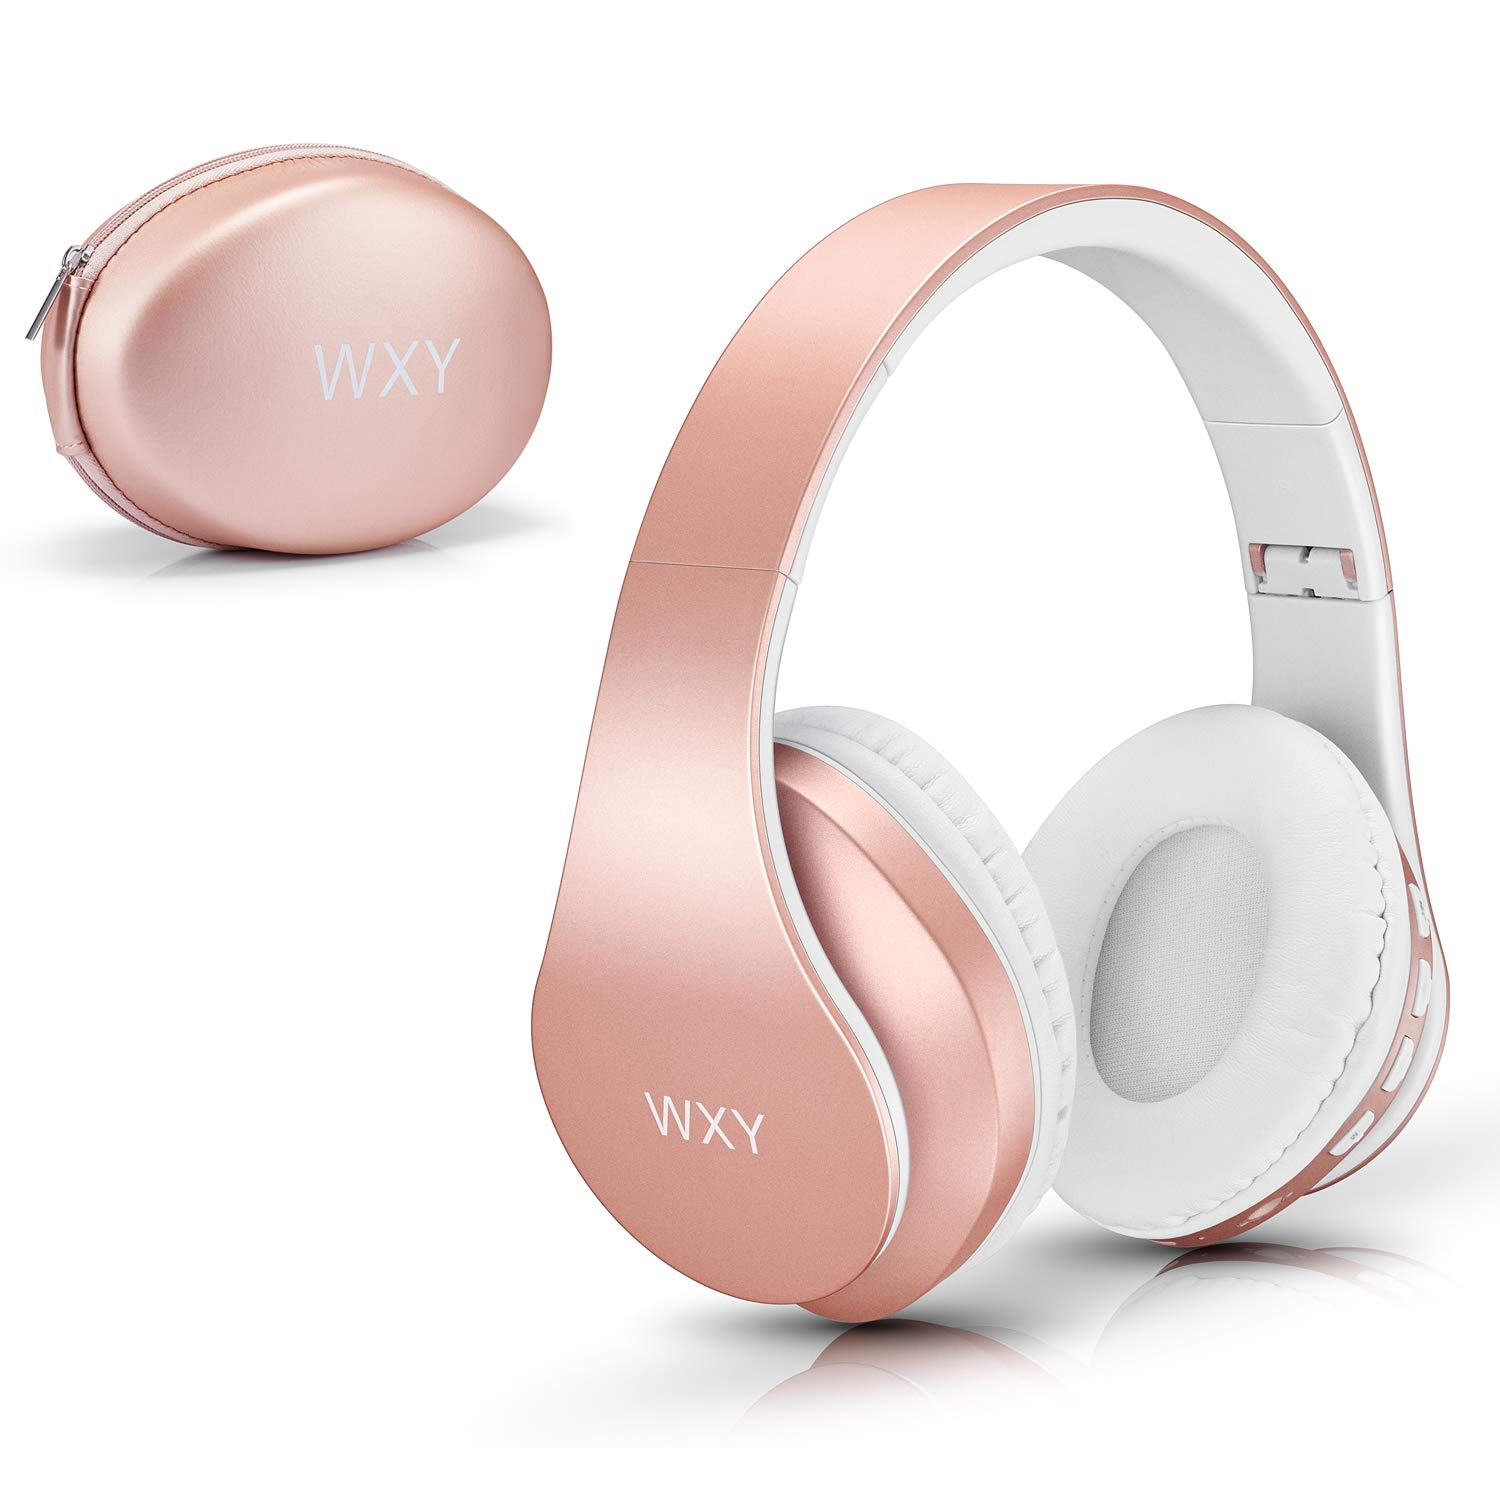 Over Ear Bluetooth Headphones, WXY Girls Wireless Headset V5.0 with Built-in Mic, Micro TF, FM Radio, Soft Earmuffs & Lightweight for iPhone/Samsung/PC/TV/Travel(Rose Gold) by WXY